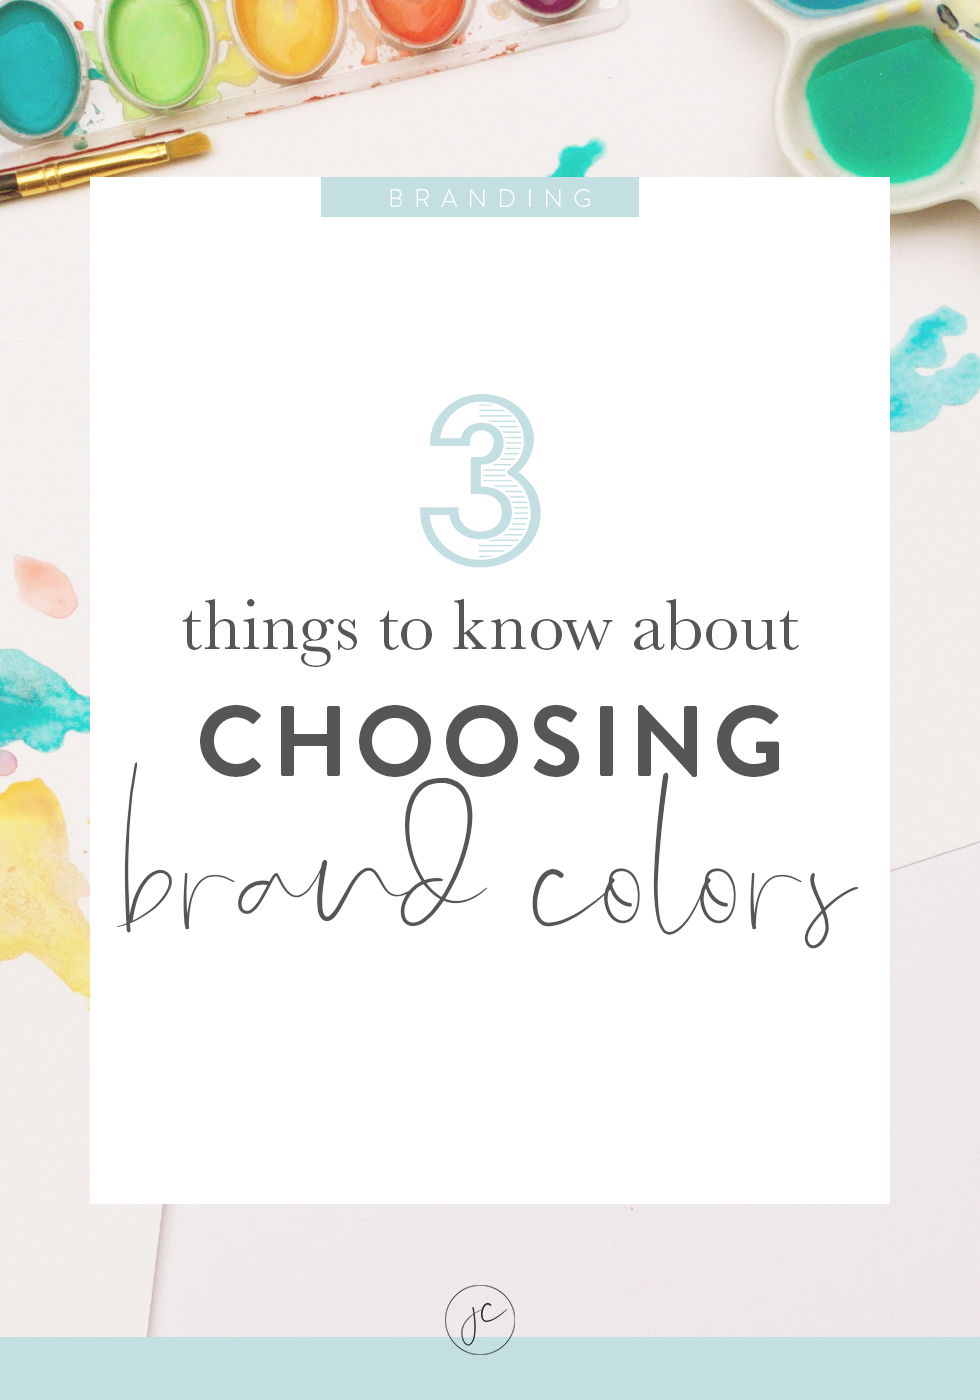 3 Things to Know About Choosing Brand Colors